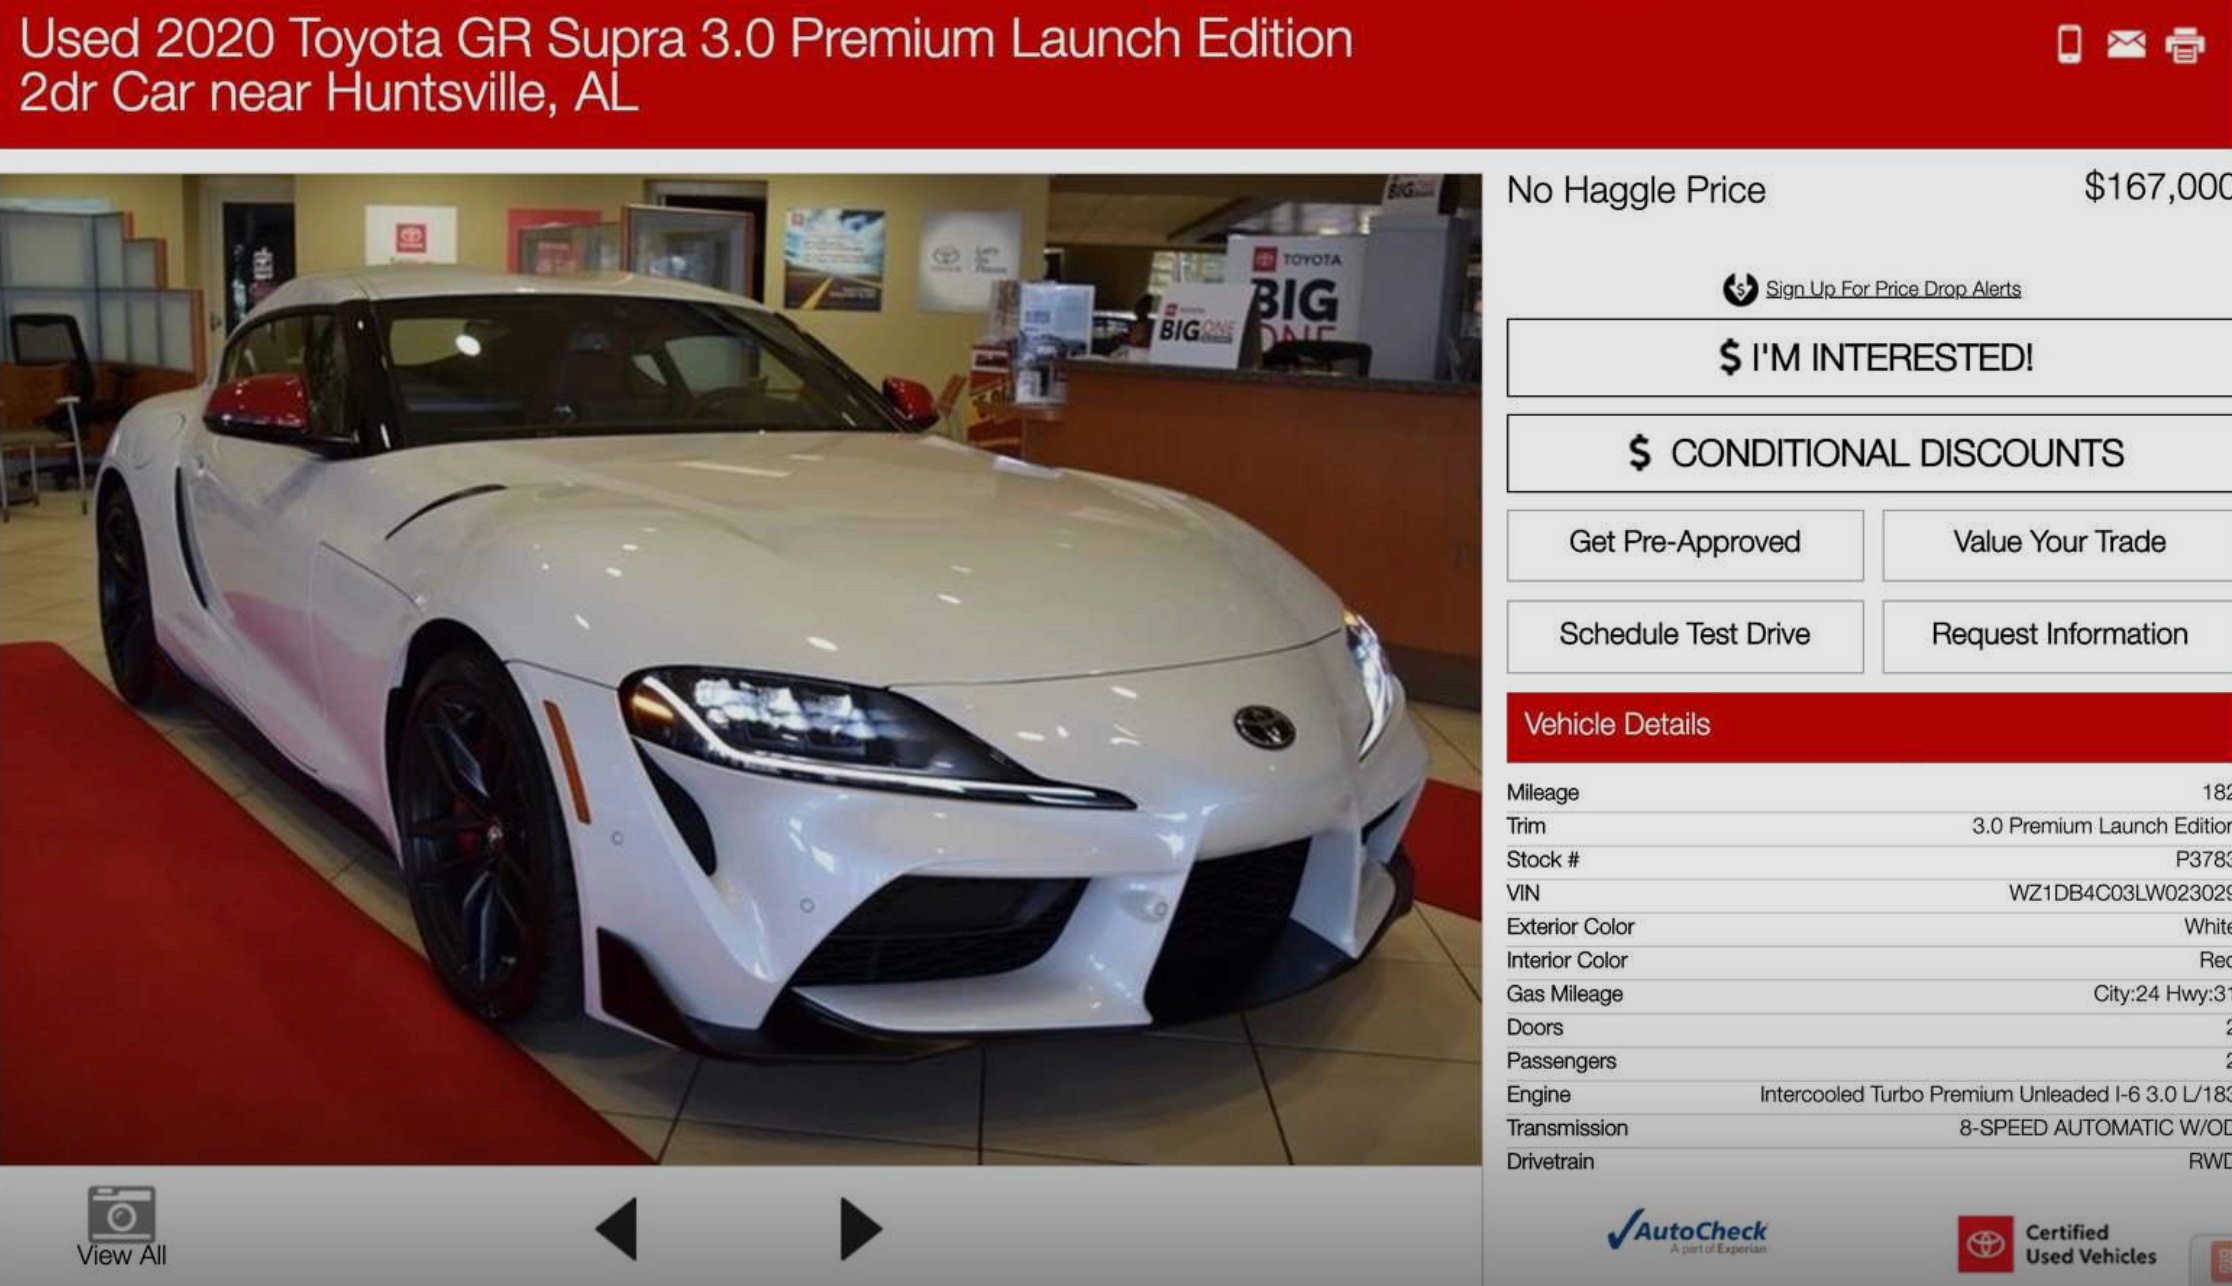 Used 2020 Toyota GR Supra 3.0 Launch Edition